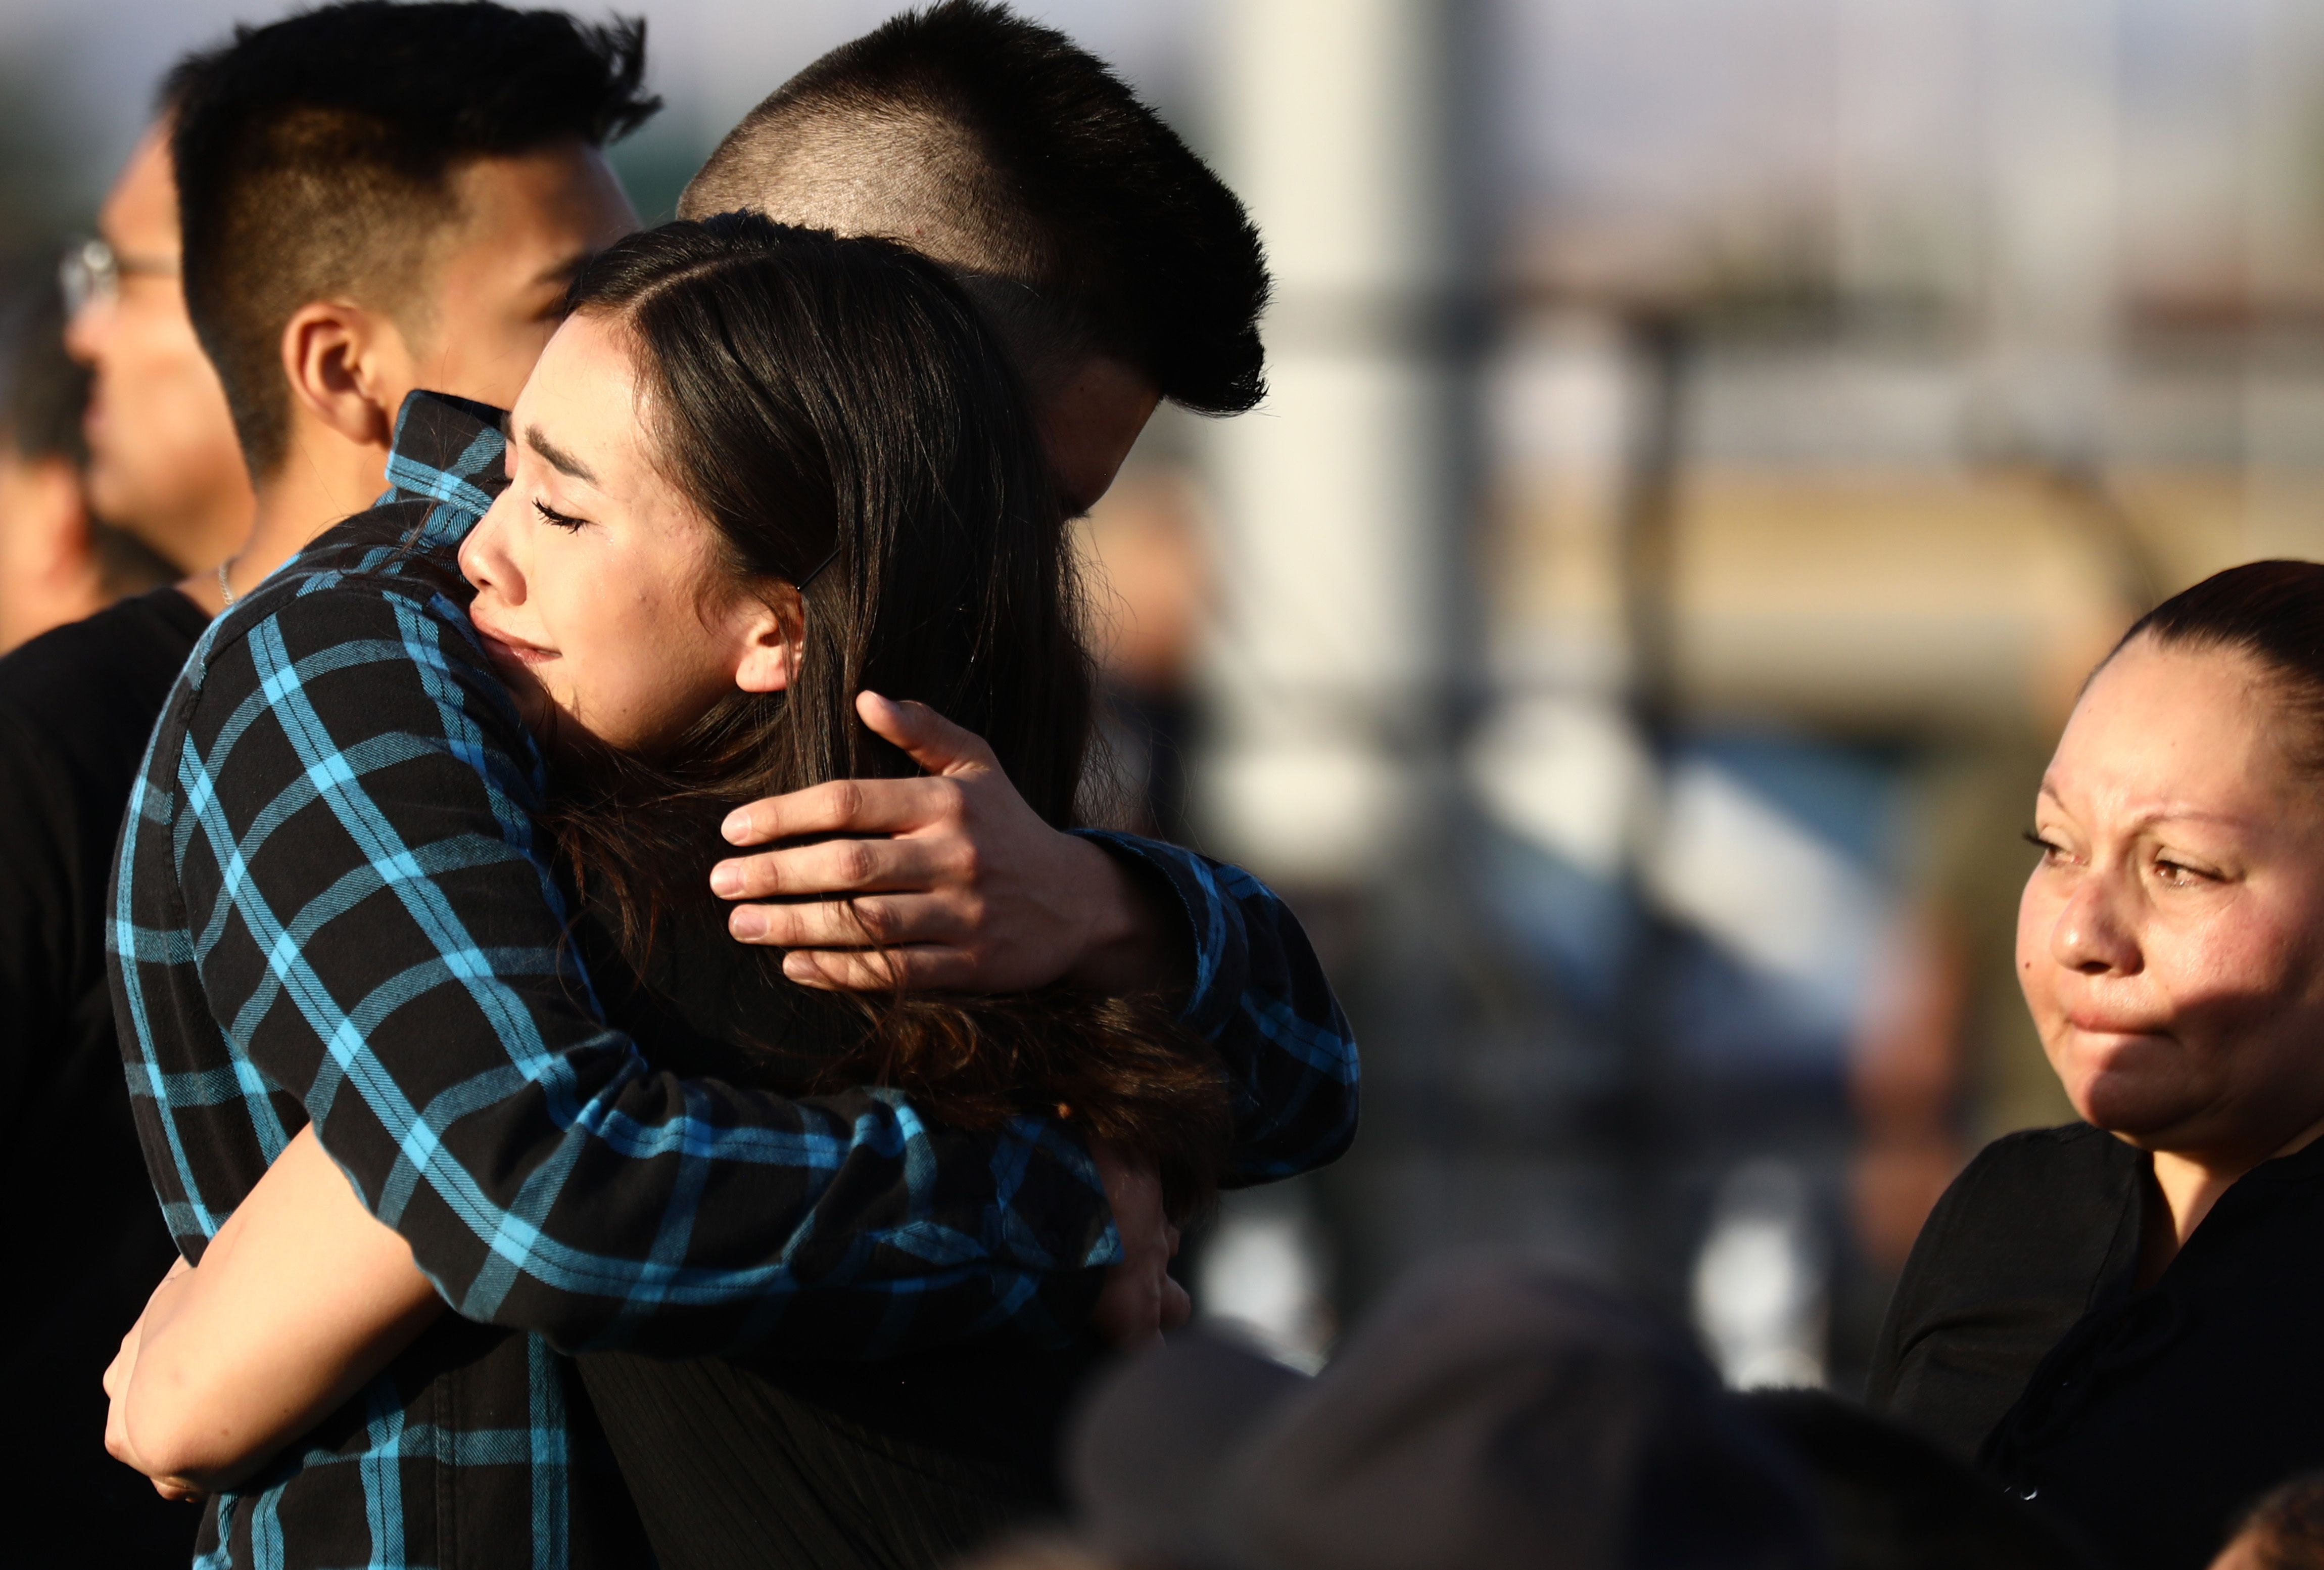 Your Mental Health Suffers After a Mass Shooting—Here's How You Can Cope